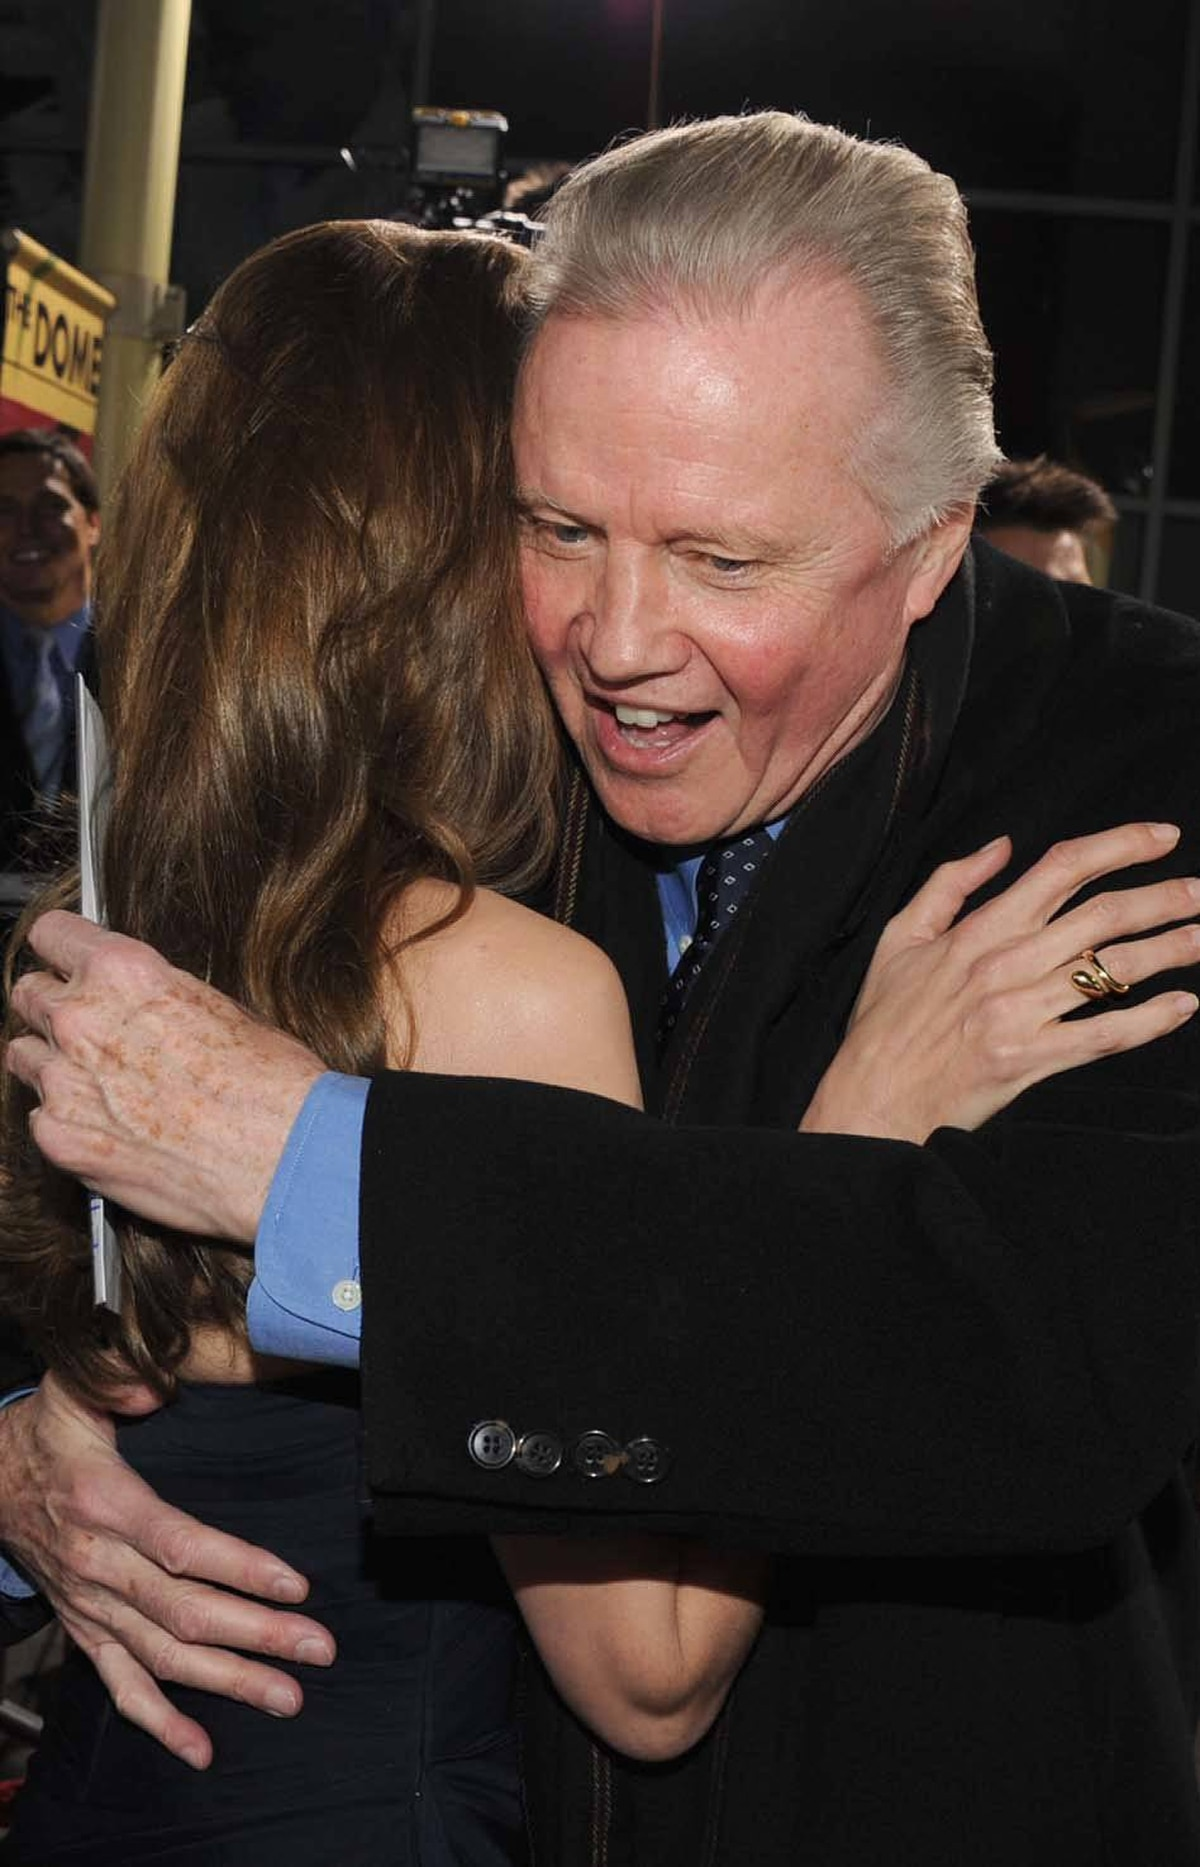 """Jon Voight, clearly past the whole making-out-with-your-brother-at-the-Oscars thing, gives his daughter Angelina Jolie an unrequited hug at the Hollywood premiere of her film """"In the Land of Blood and Honey"""" last week. He's happy because he only had to see her film once."""